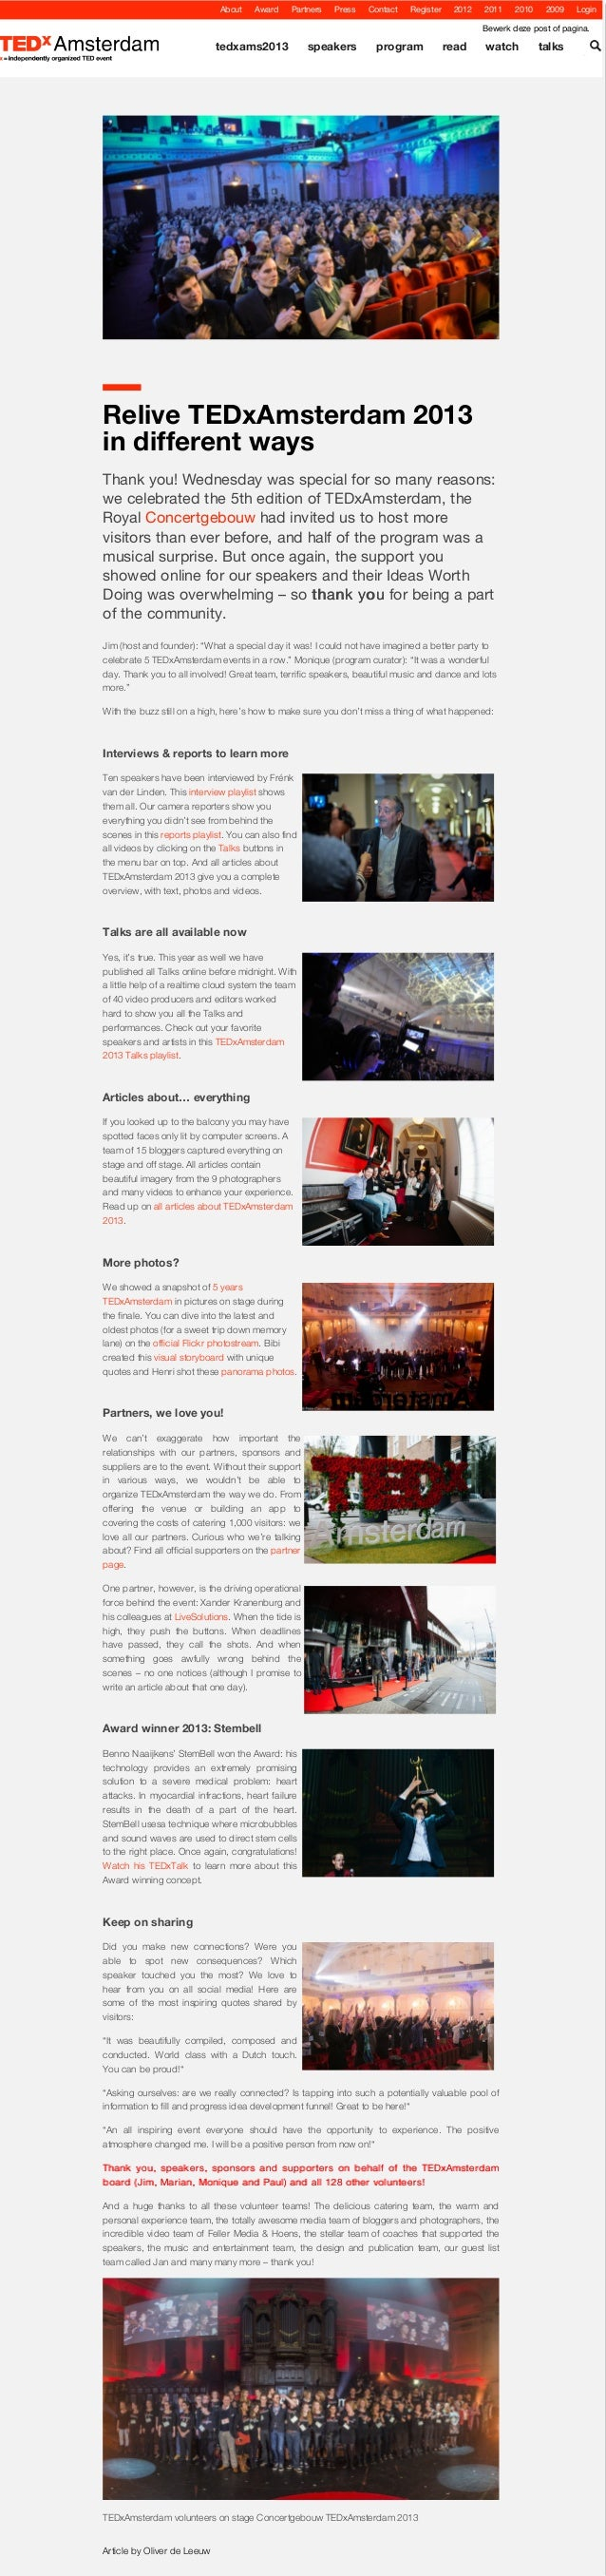 Relive TEDxAmsterdam 2013 in different ways #TEDxAms